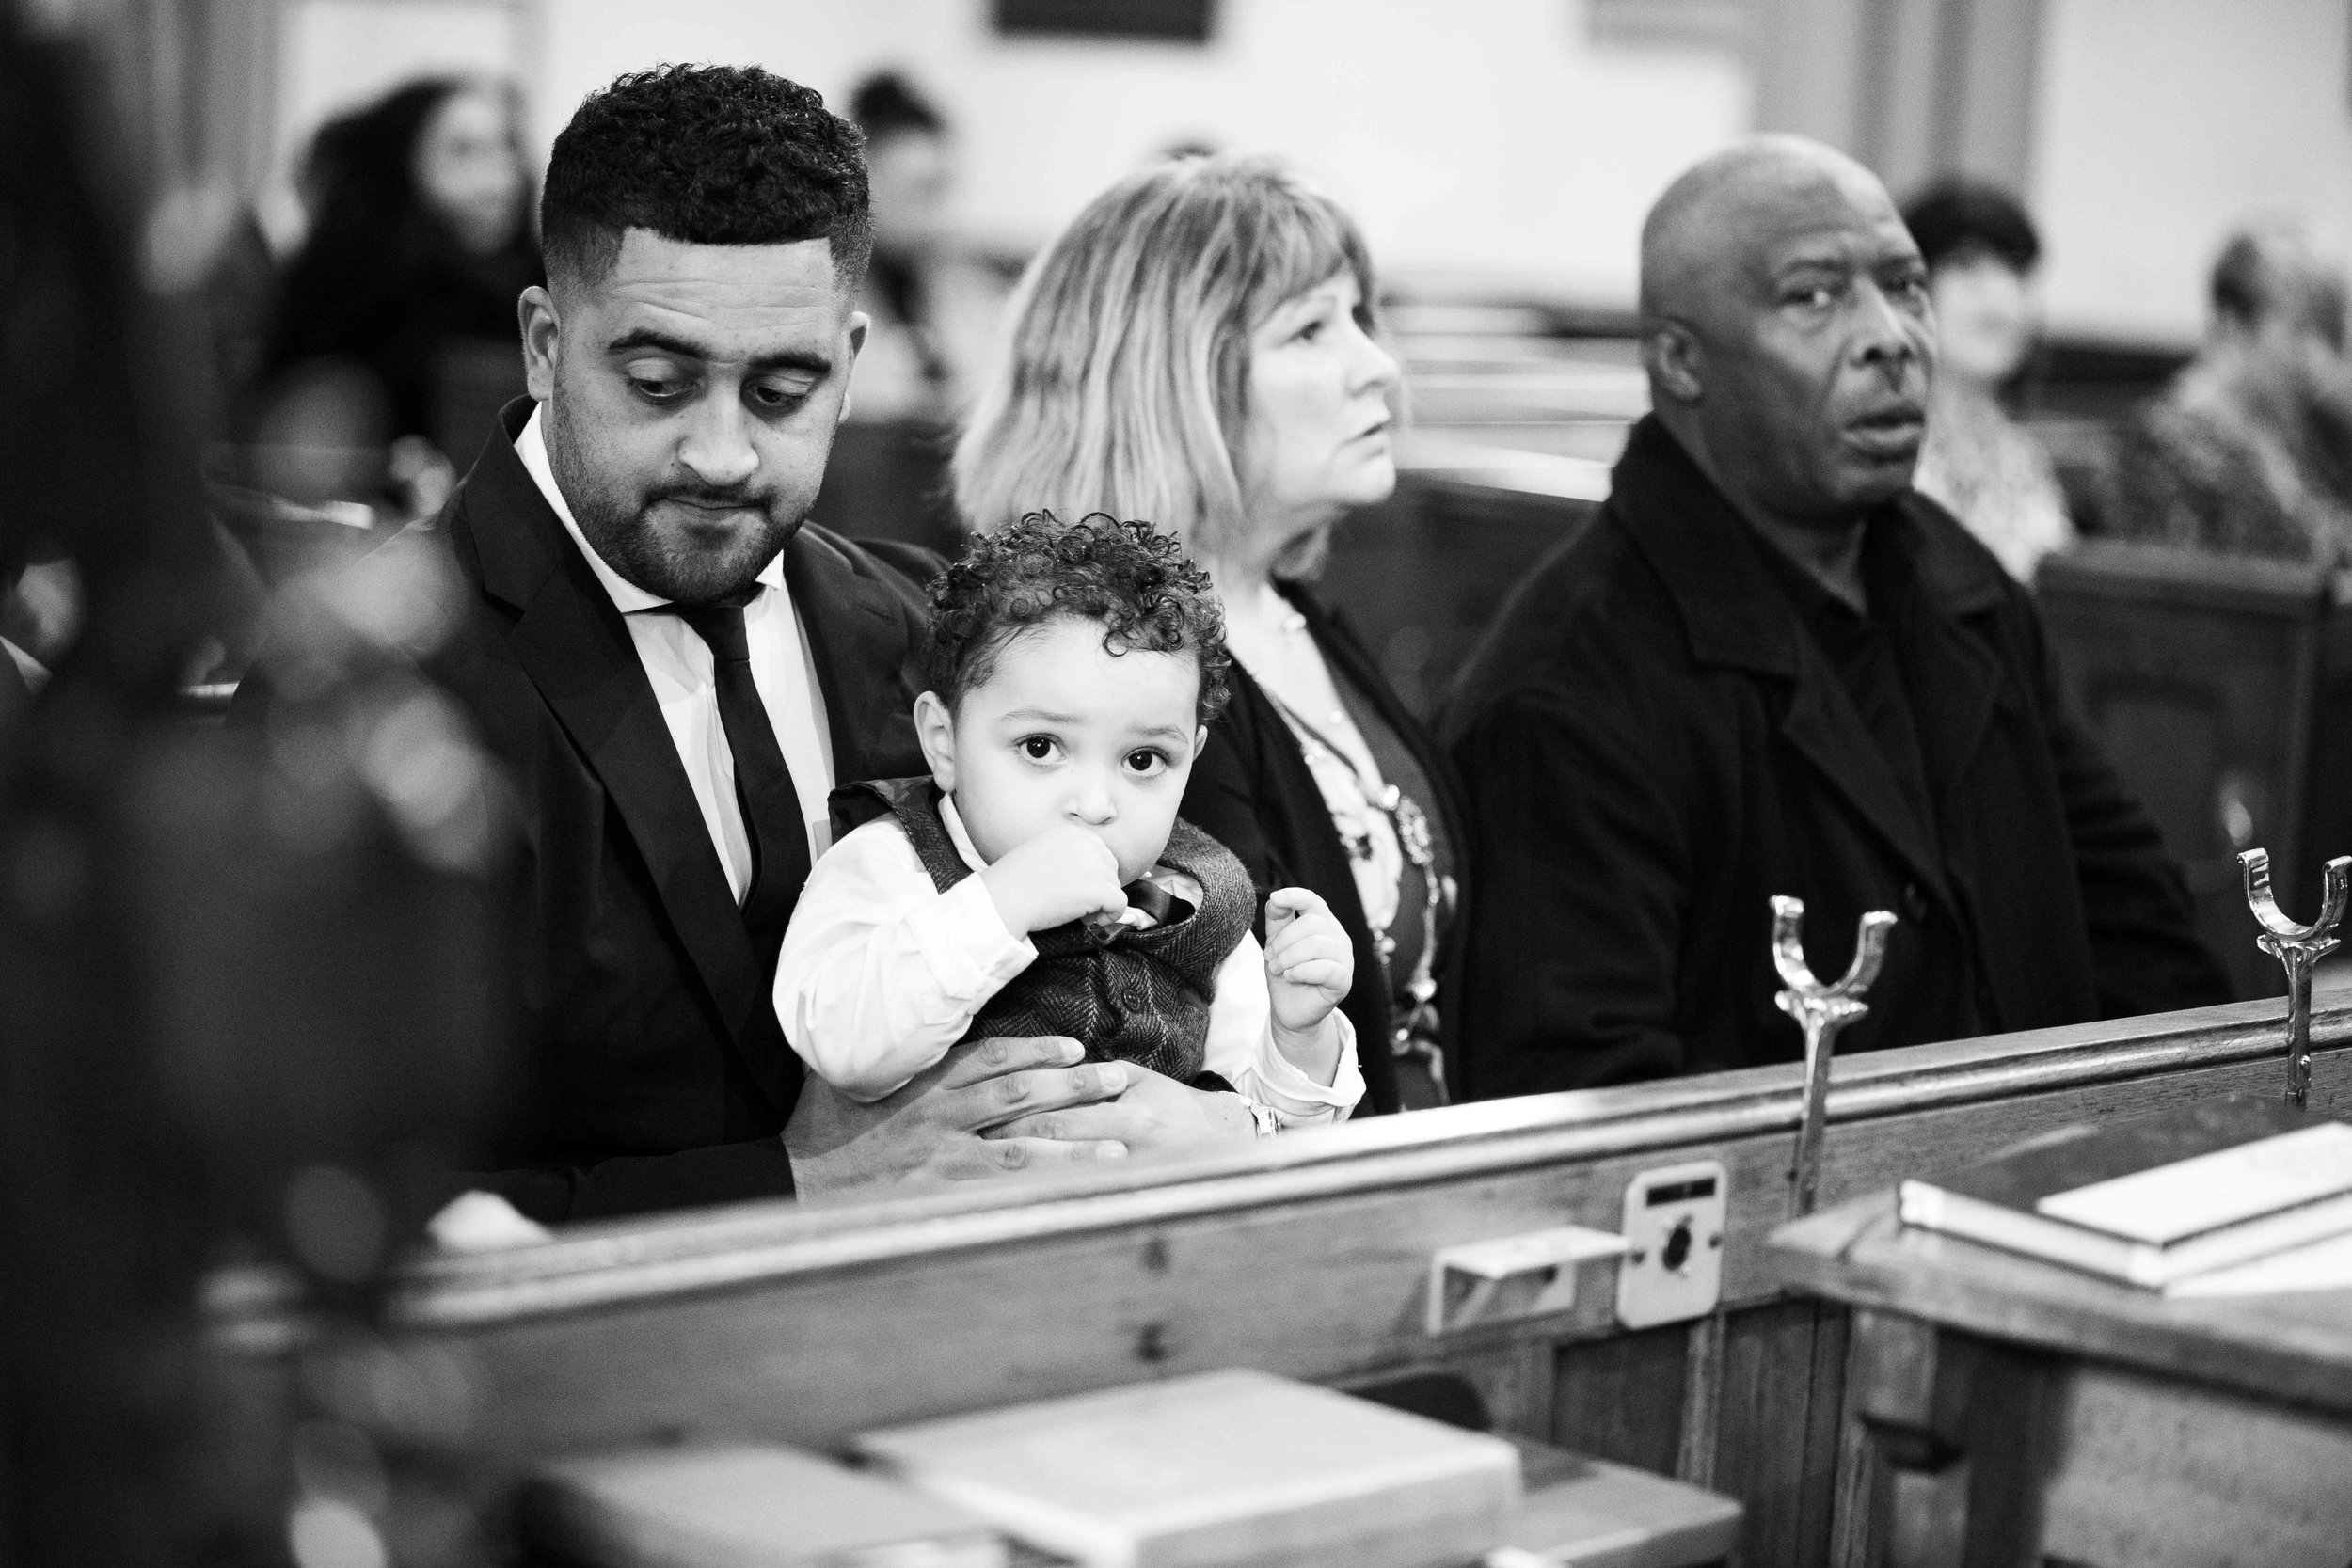 Lea-cooper-photography-christening-photographer-baptism-wolverhampton-wednesbury-walsall-willenhall-dudley-church-chapel-event-photography-15.jpg